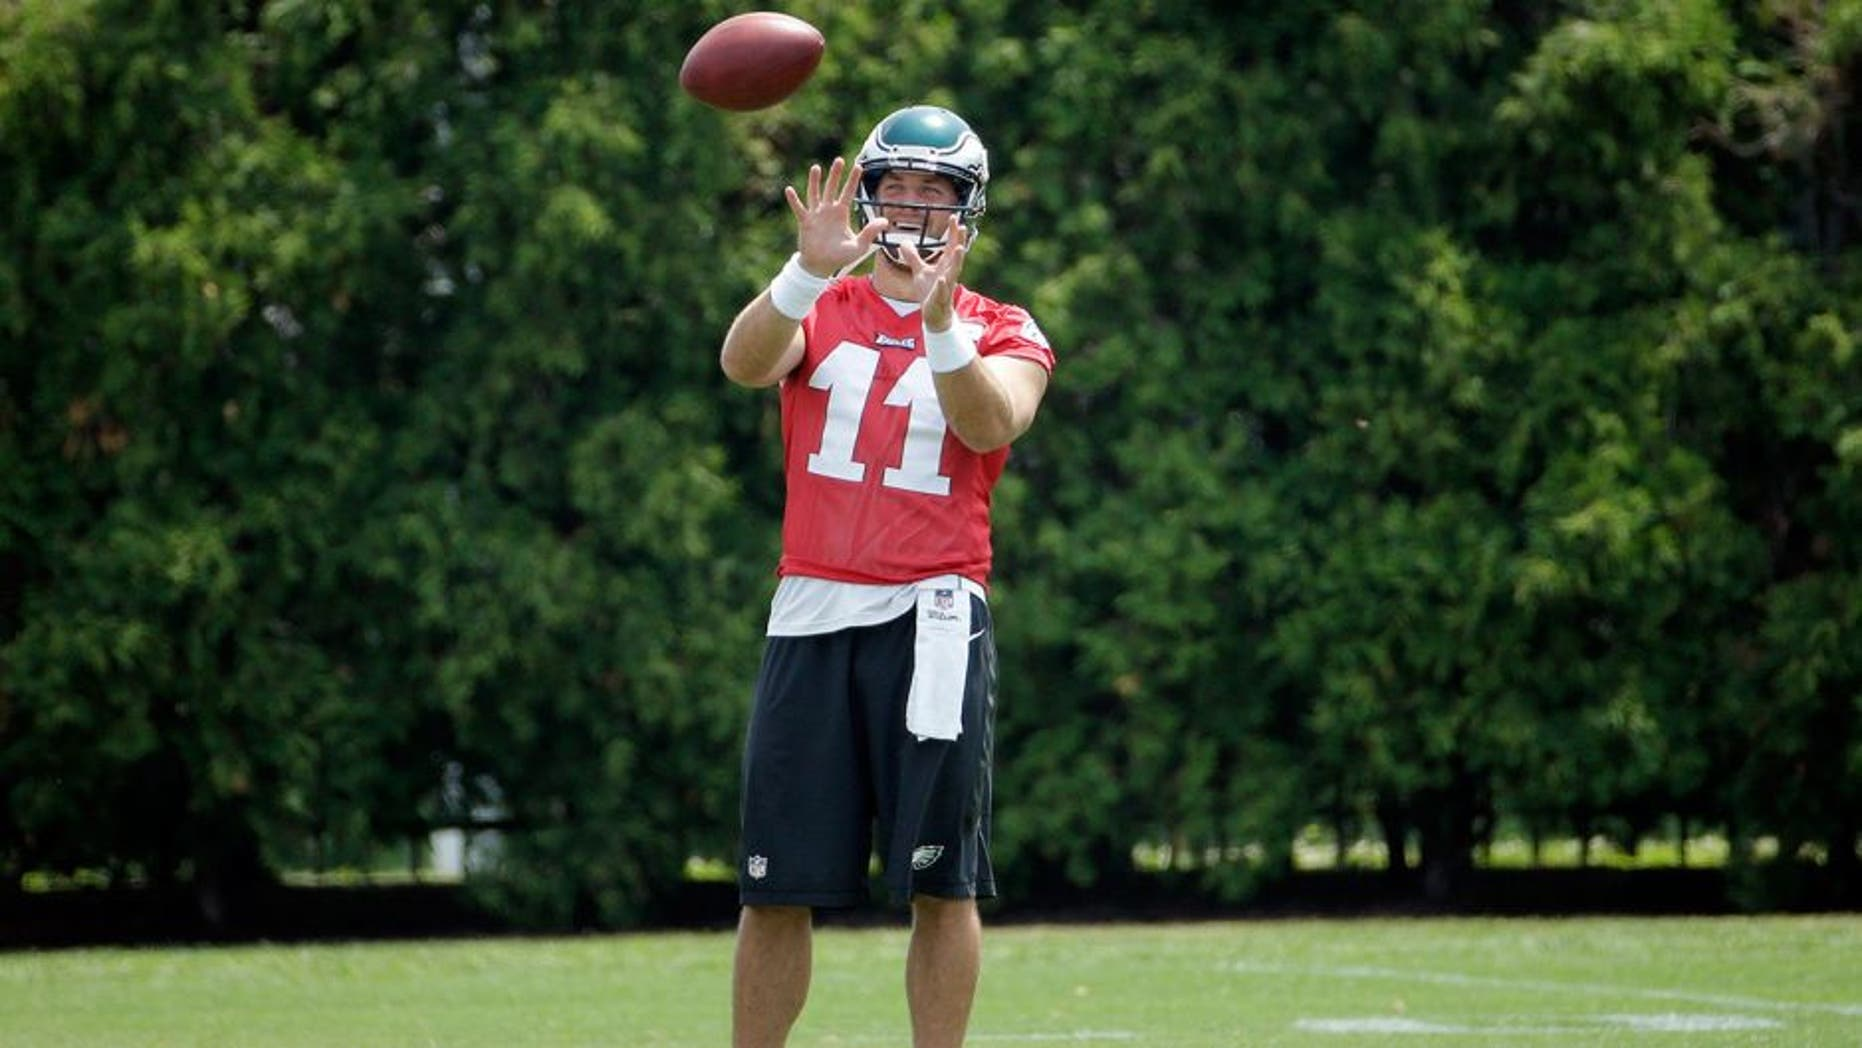 Philadelphia Eagles' Tim Tebow warms up during organized team activities at the NFL football team's practice facility, Thursday, May 28, 2015, in Philadelphia. (AP Photo/Matt Slocum)